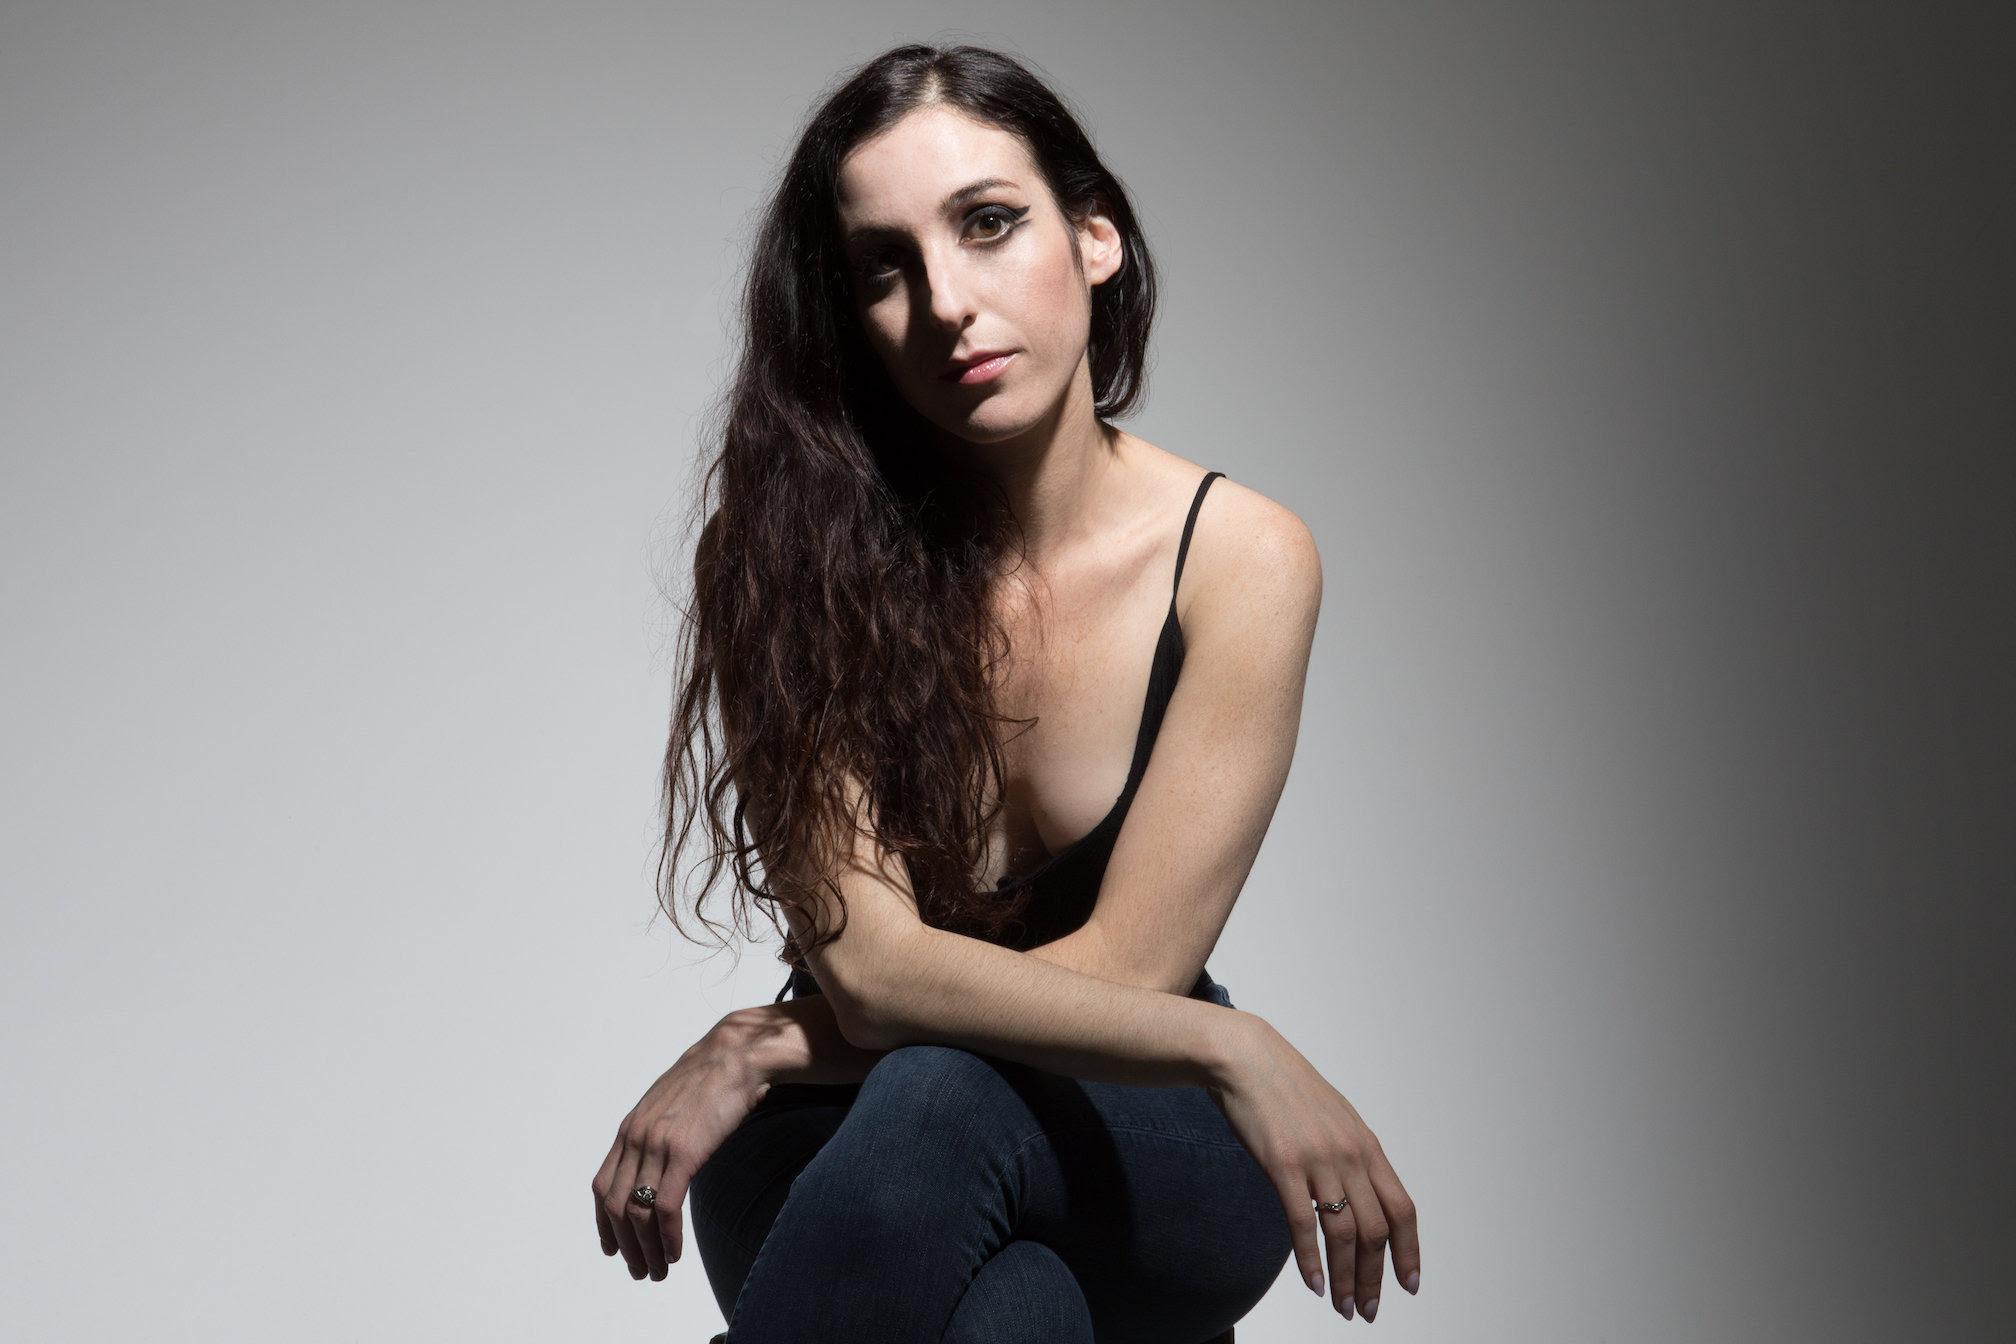 Marissa Nadler's 'For My Crimes' is a profound meditation on sorrow